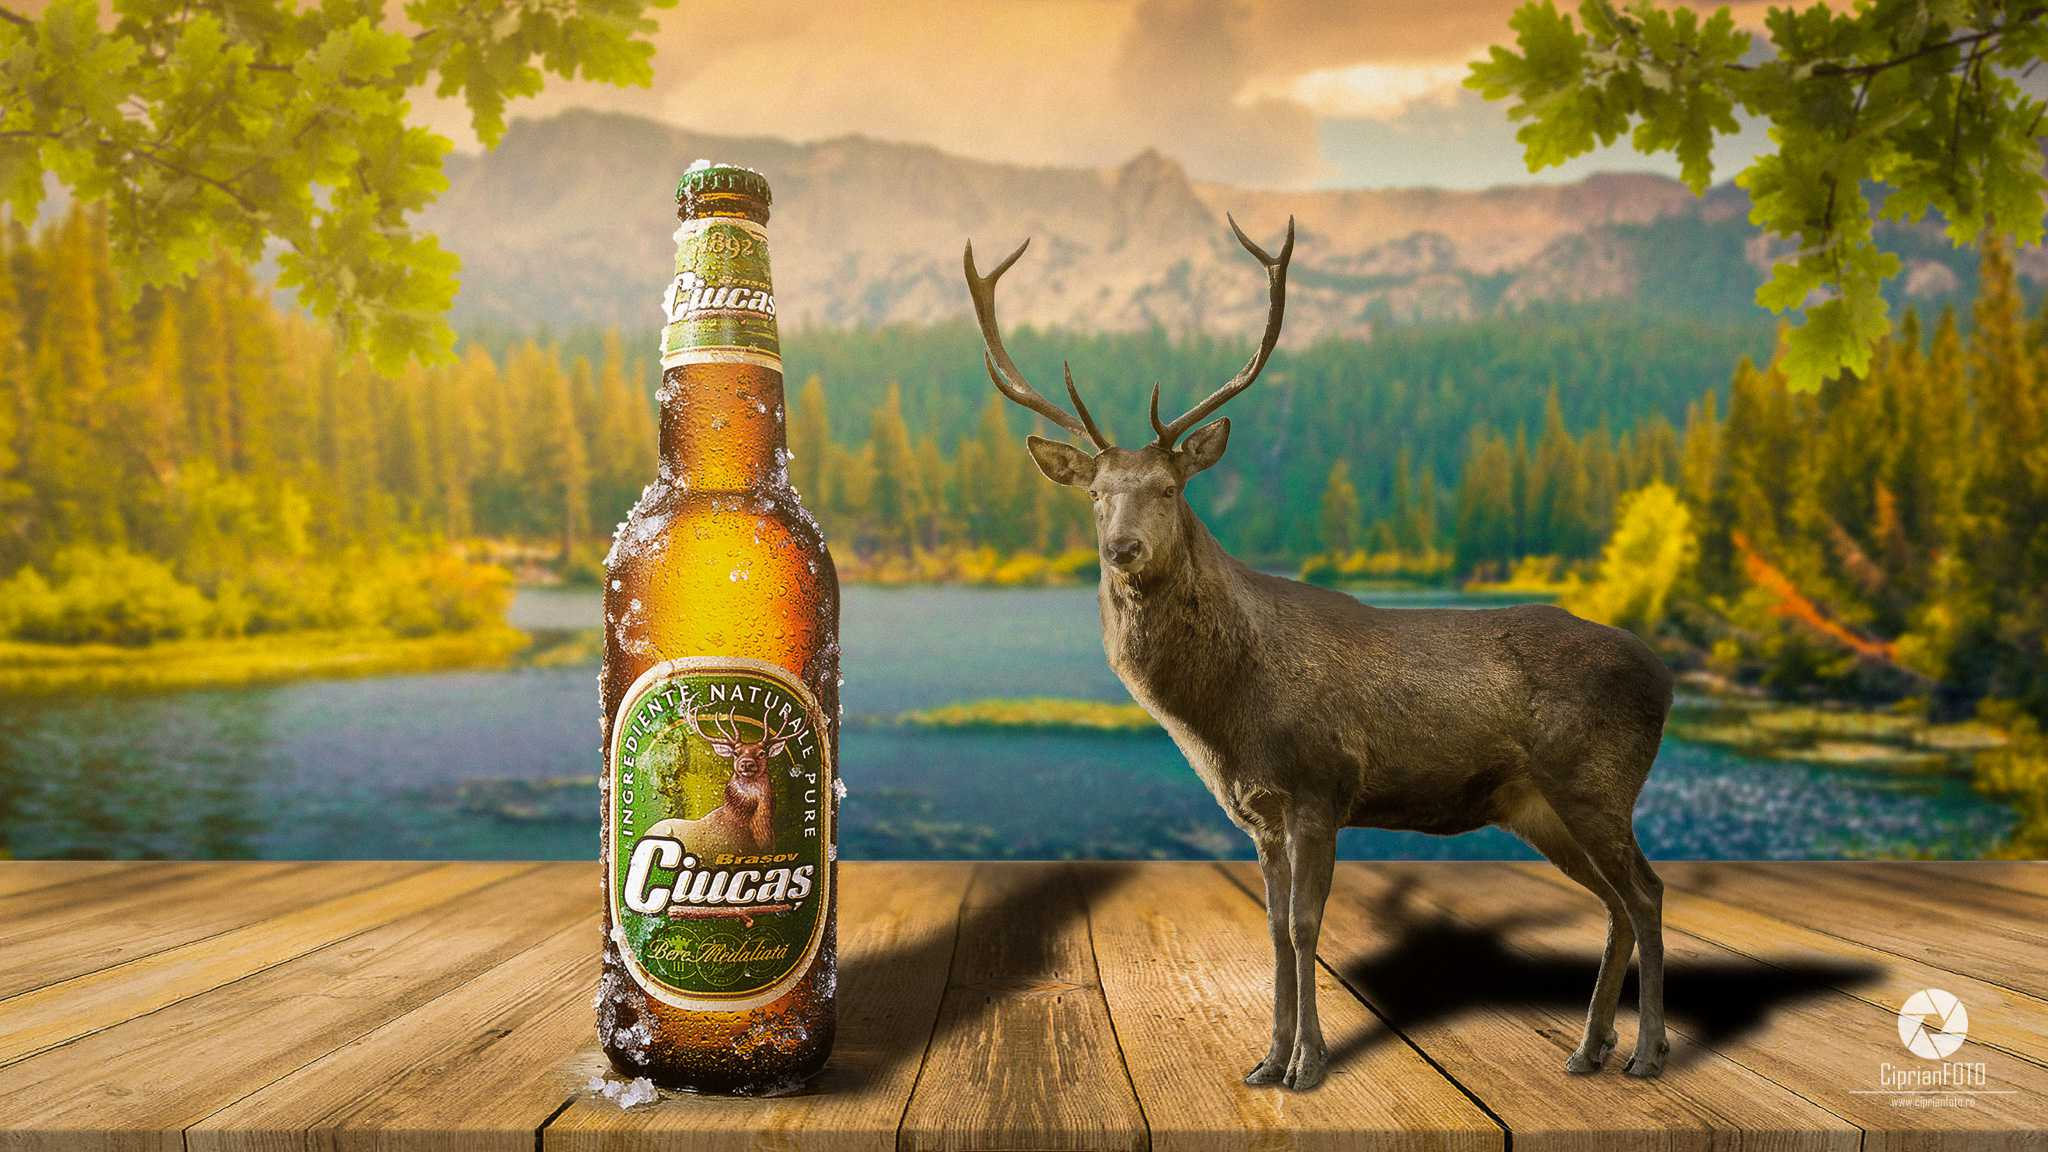 Ciucas Beer And Deer, Photoshop Manipulation Tutorial, CiprianFOTO